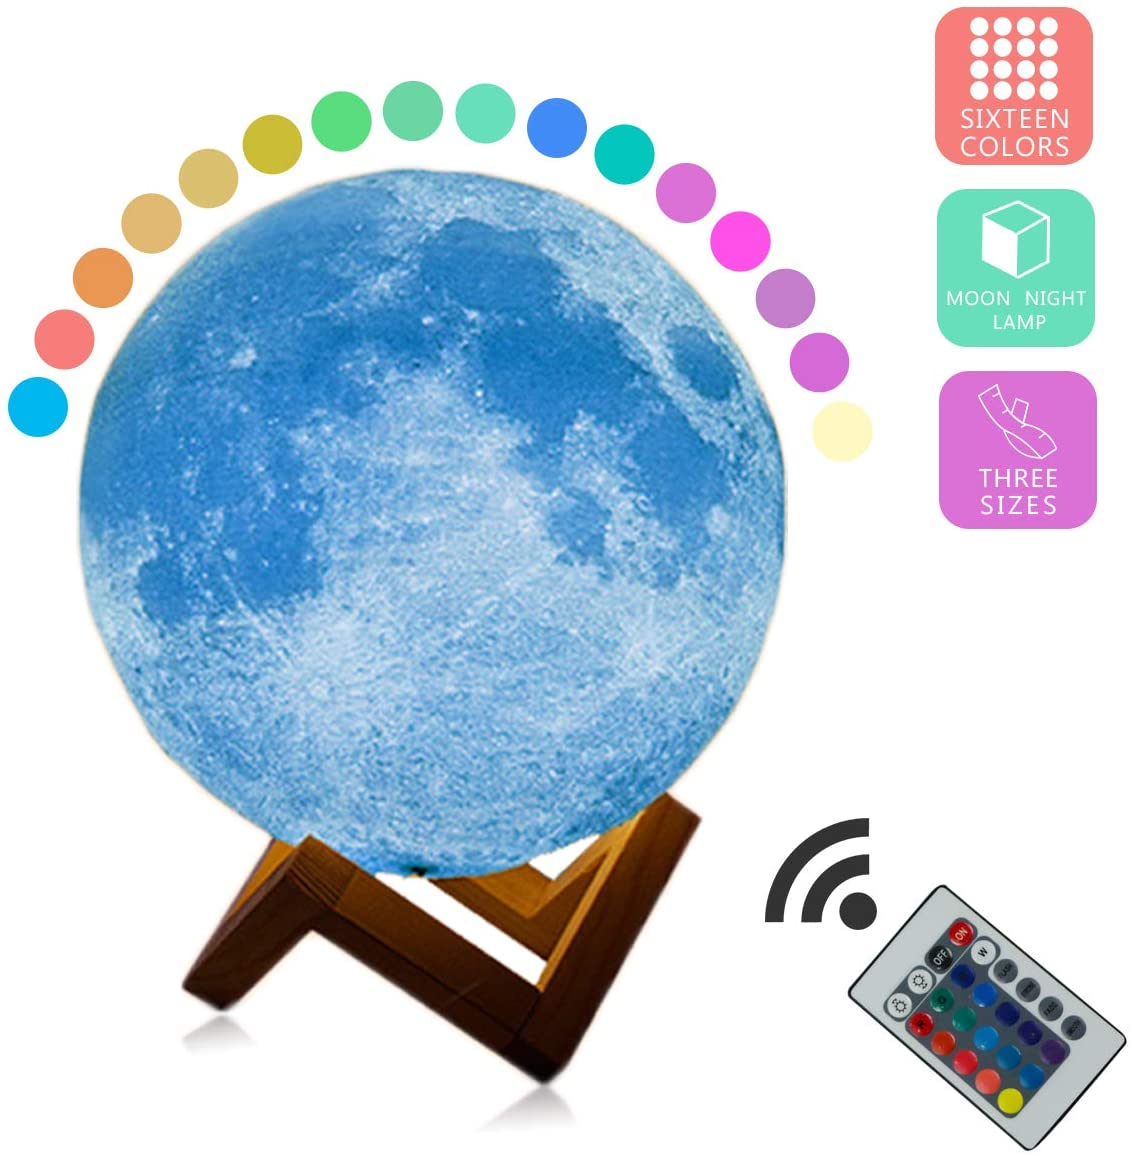 Moon Lamp Moon Light 3D Printing 2/16 Colors Night Light, Home Decorative Rechargeable Lunar Light with Wooden Stand for Baby Kids Lover Birthday Party Gifts, Remote/Touch Control 15CM